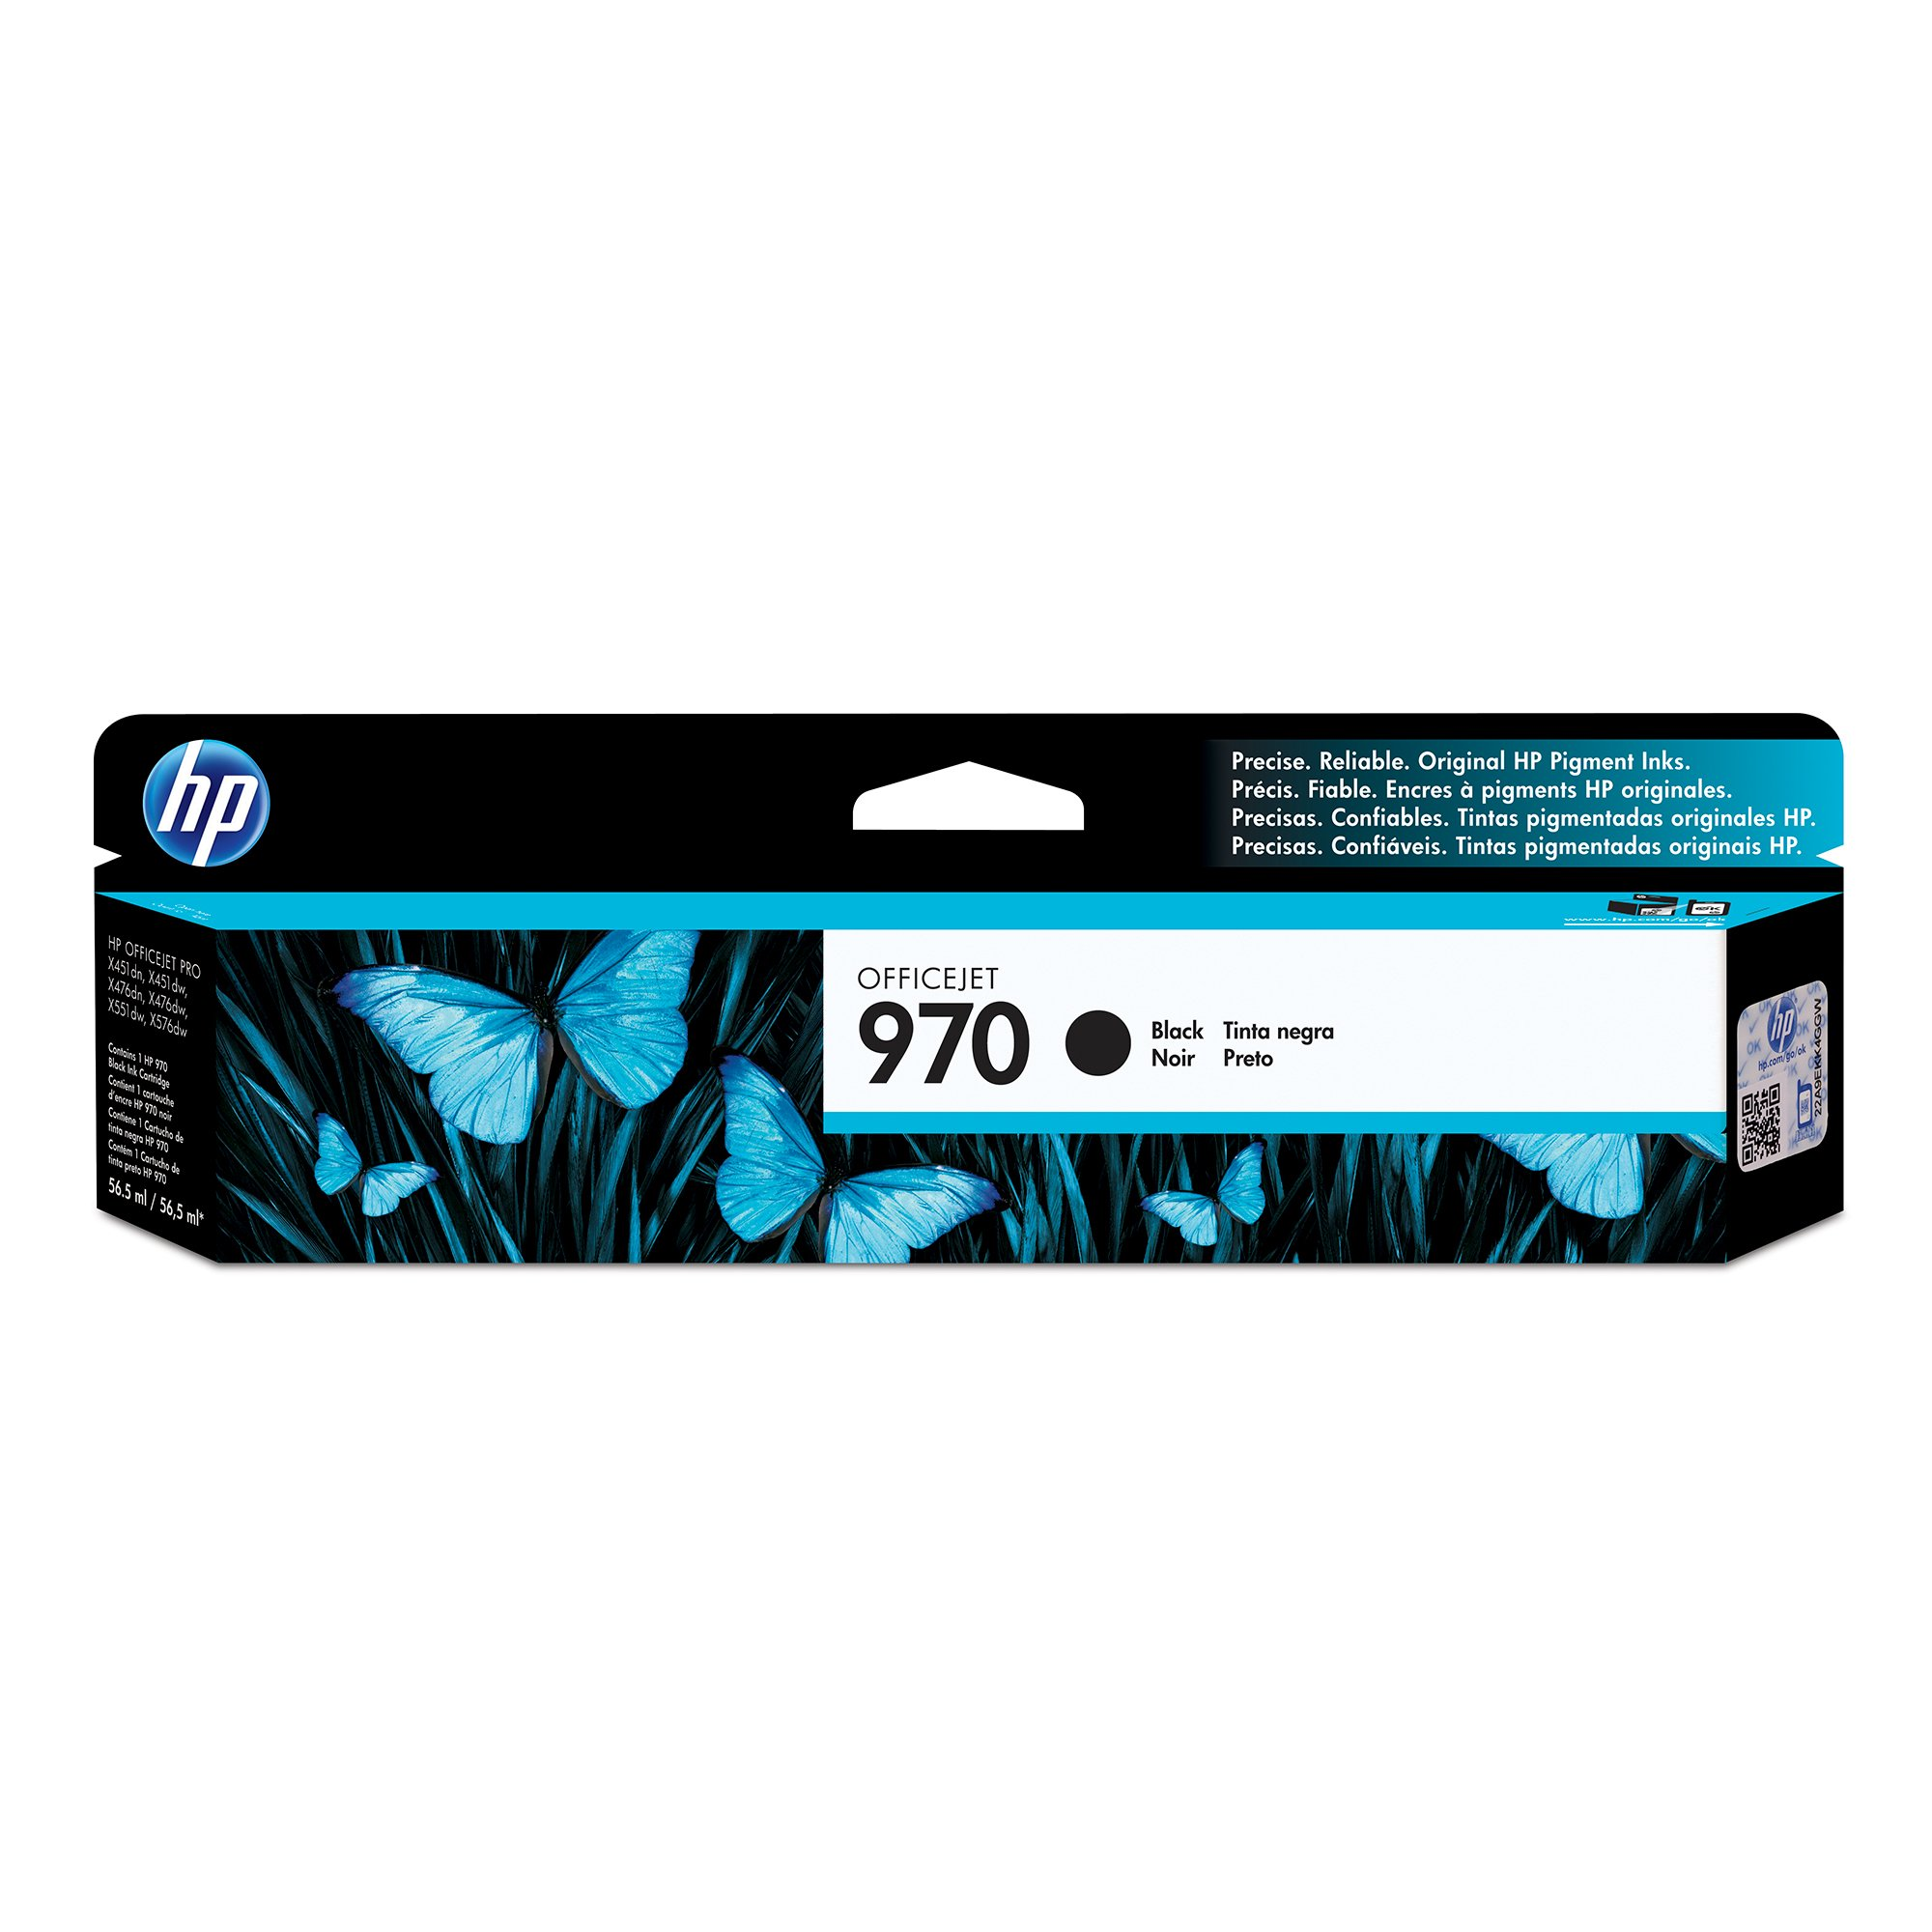 HP 970 Black Original Ink Cartridge (CN621AM) for HP Officejet Pro X451 X476 X551 X576